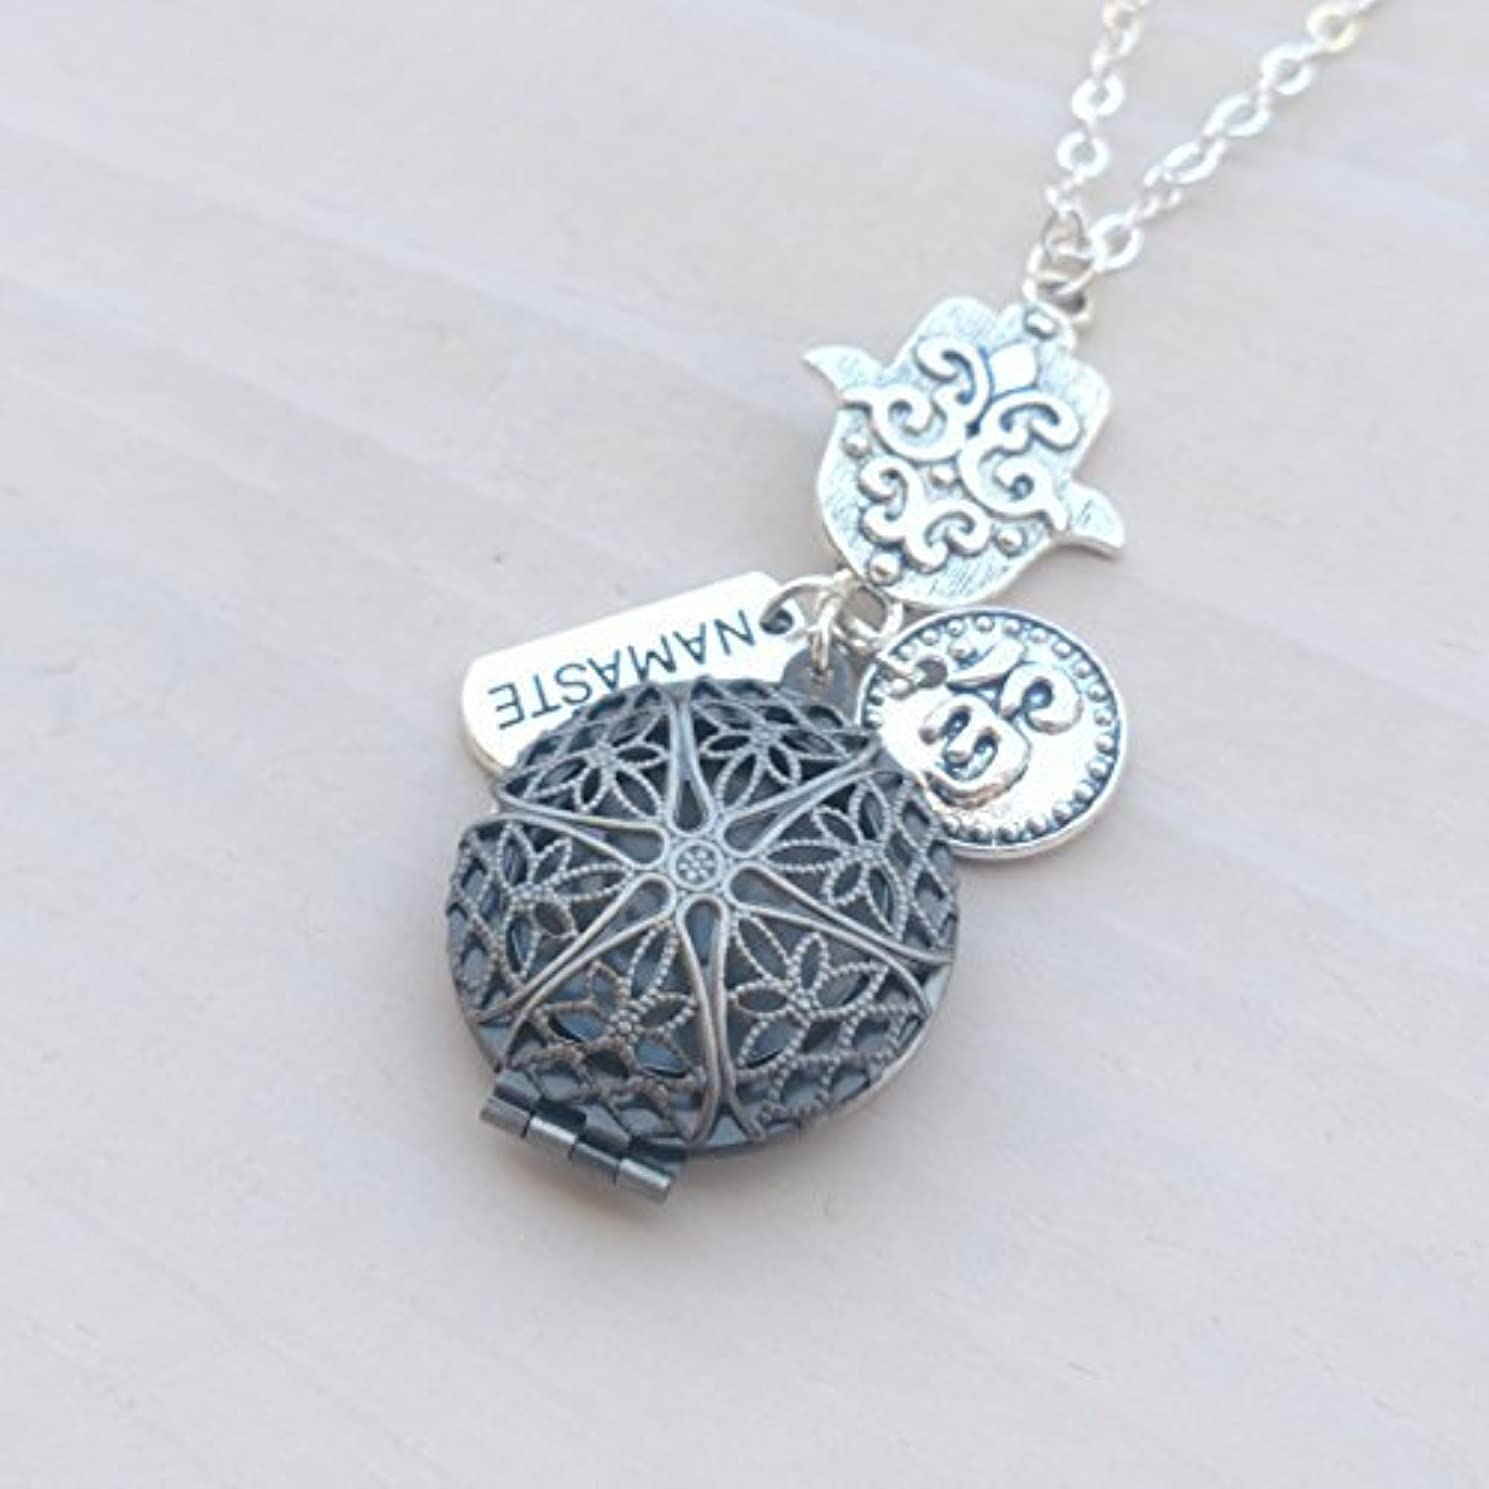 侵略達成するドロップHamsa Namaste and Om Silver-tone Charms Aromatherapy Necklace Essential Oil Diffuser Locket Pendant Jewelry w/...